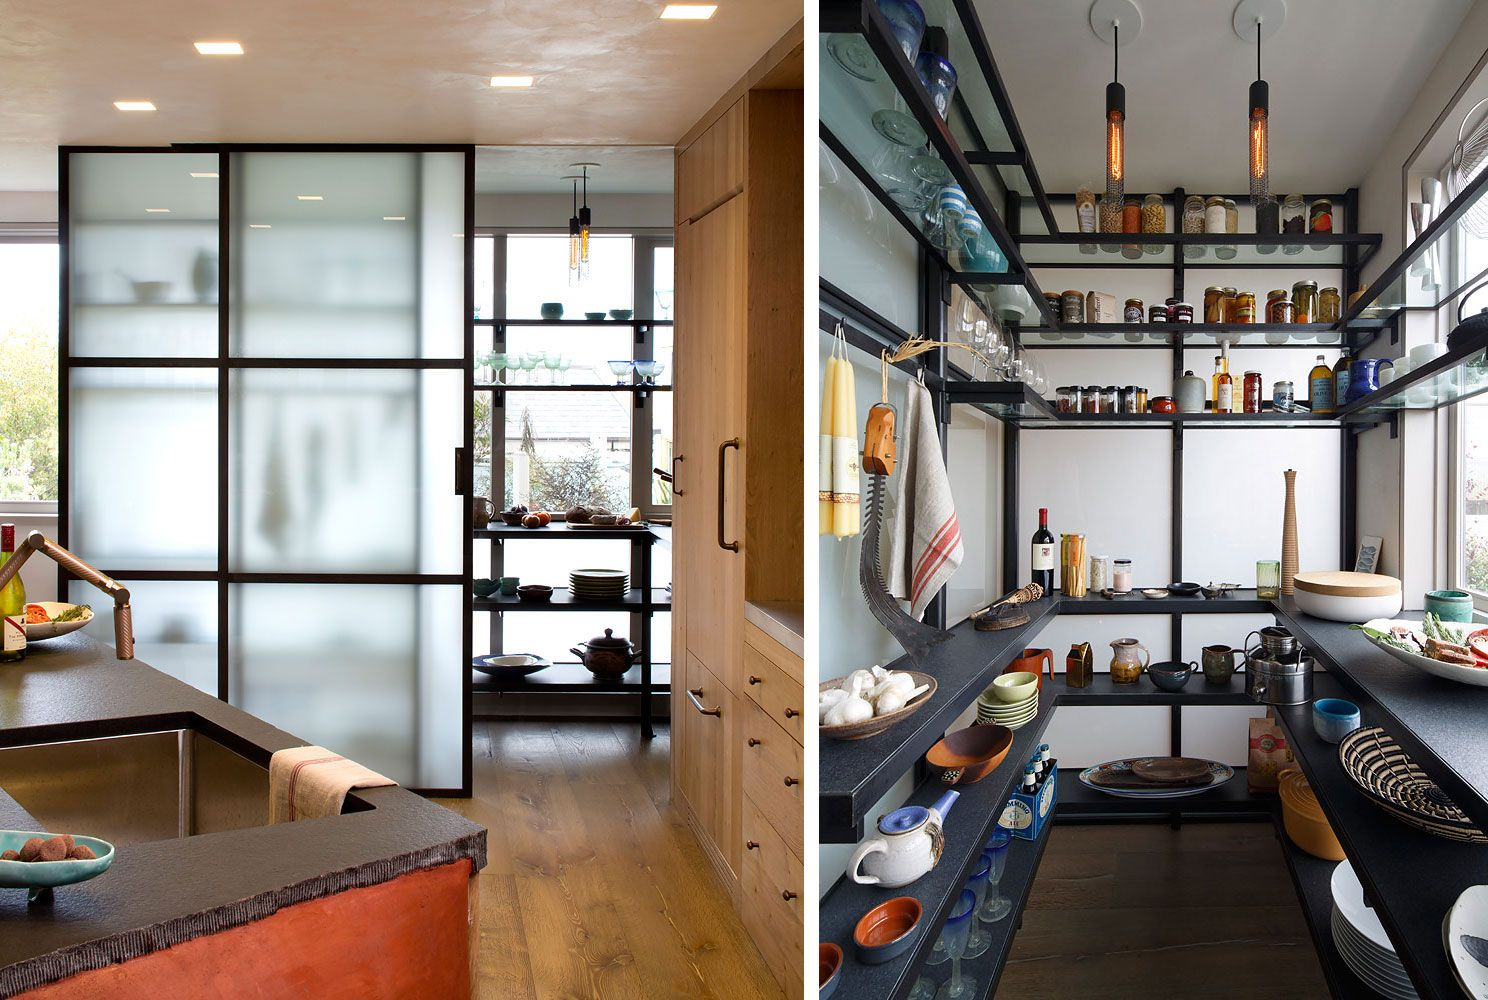 Kitchen shelving units  A Wurster Revival by Butler Armsden Architects  Storage  Pinterest